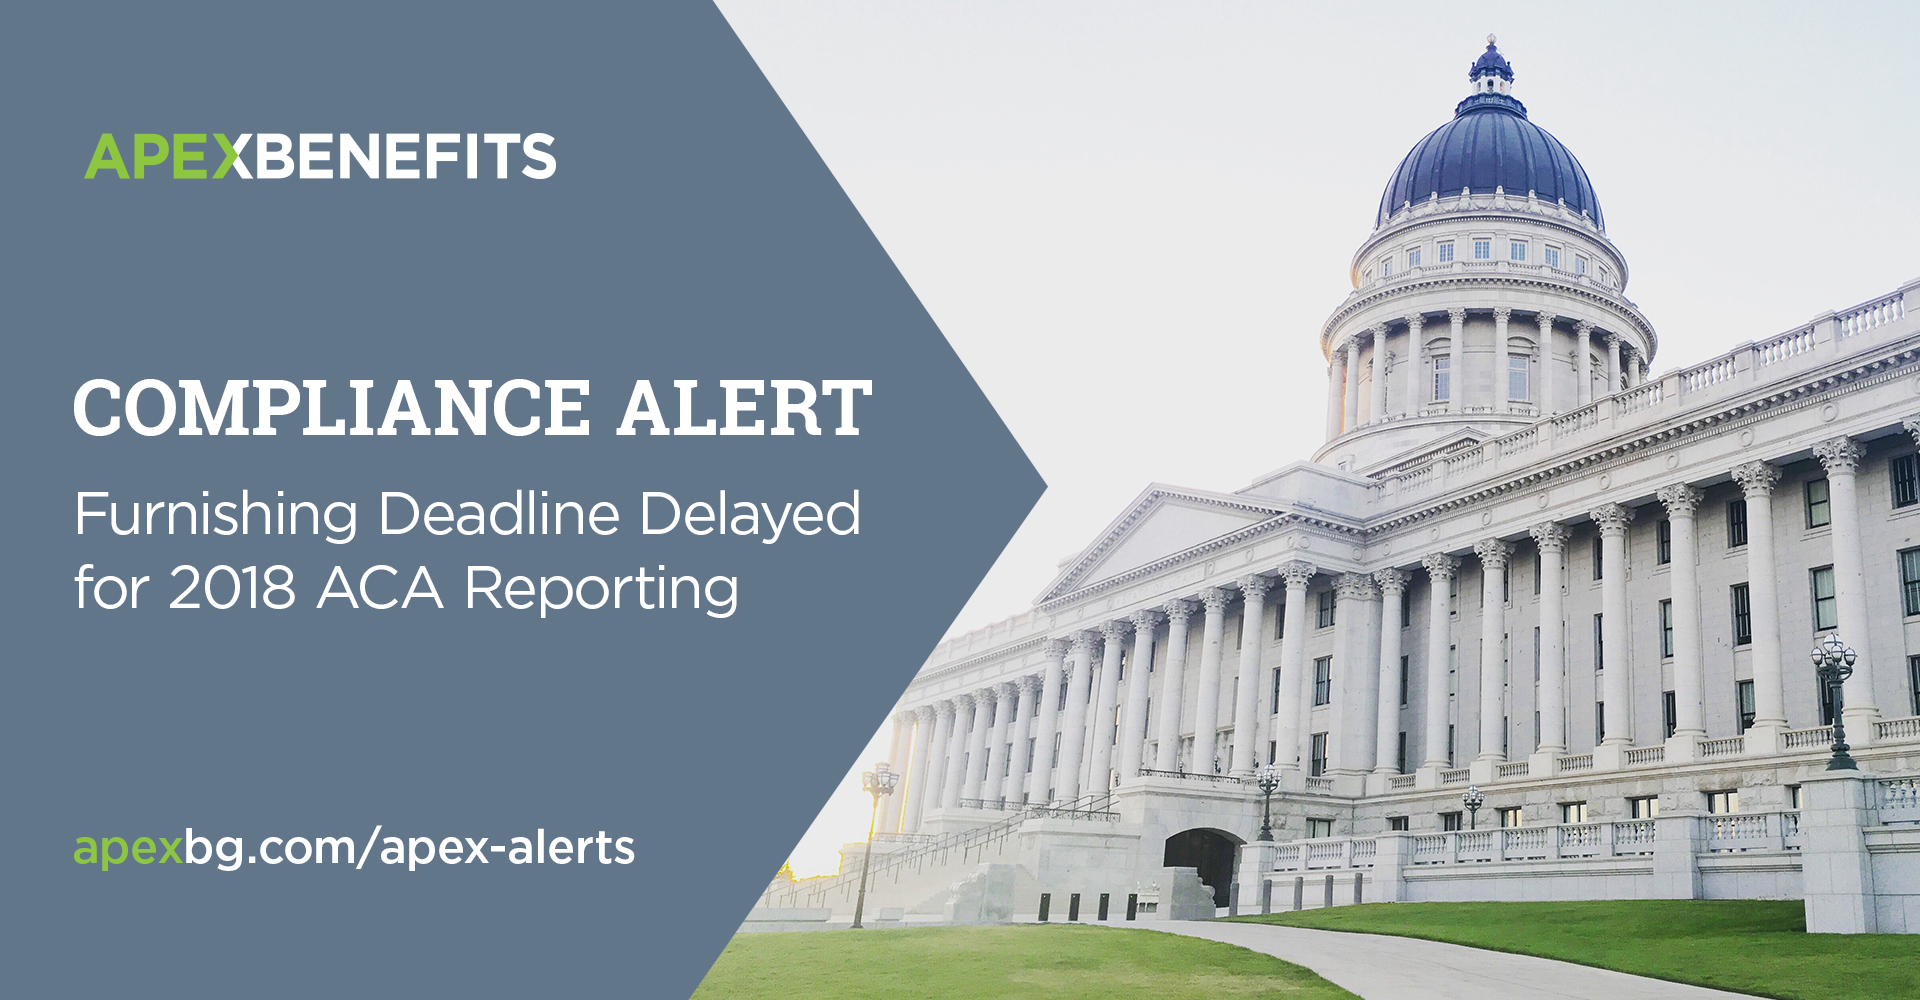 Compliance Alert: Furnishing Deadline Delayed for 2018 ACA Reporting